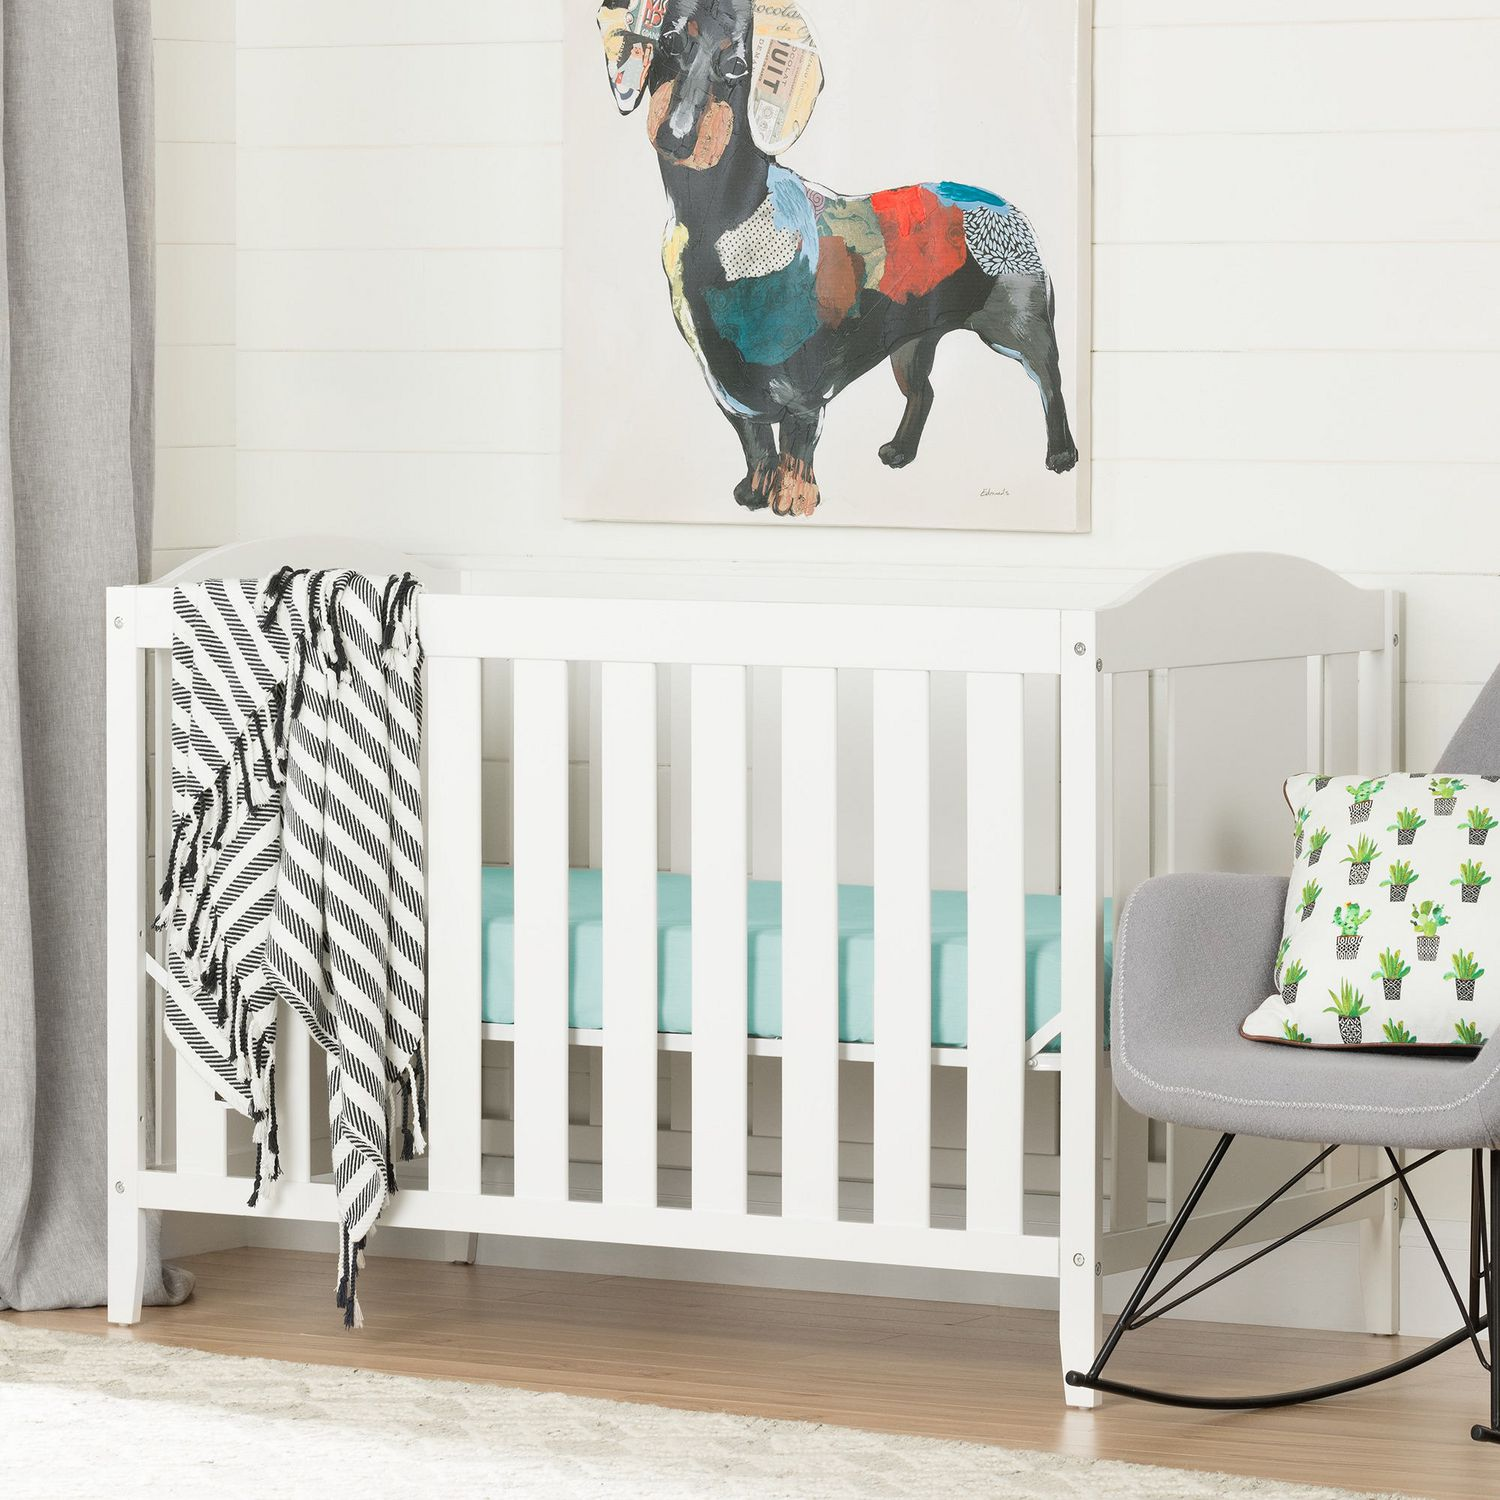 Crib for sale vernon bc - South Shore Cuddly Crib With Toddler Rail White